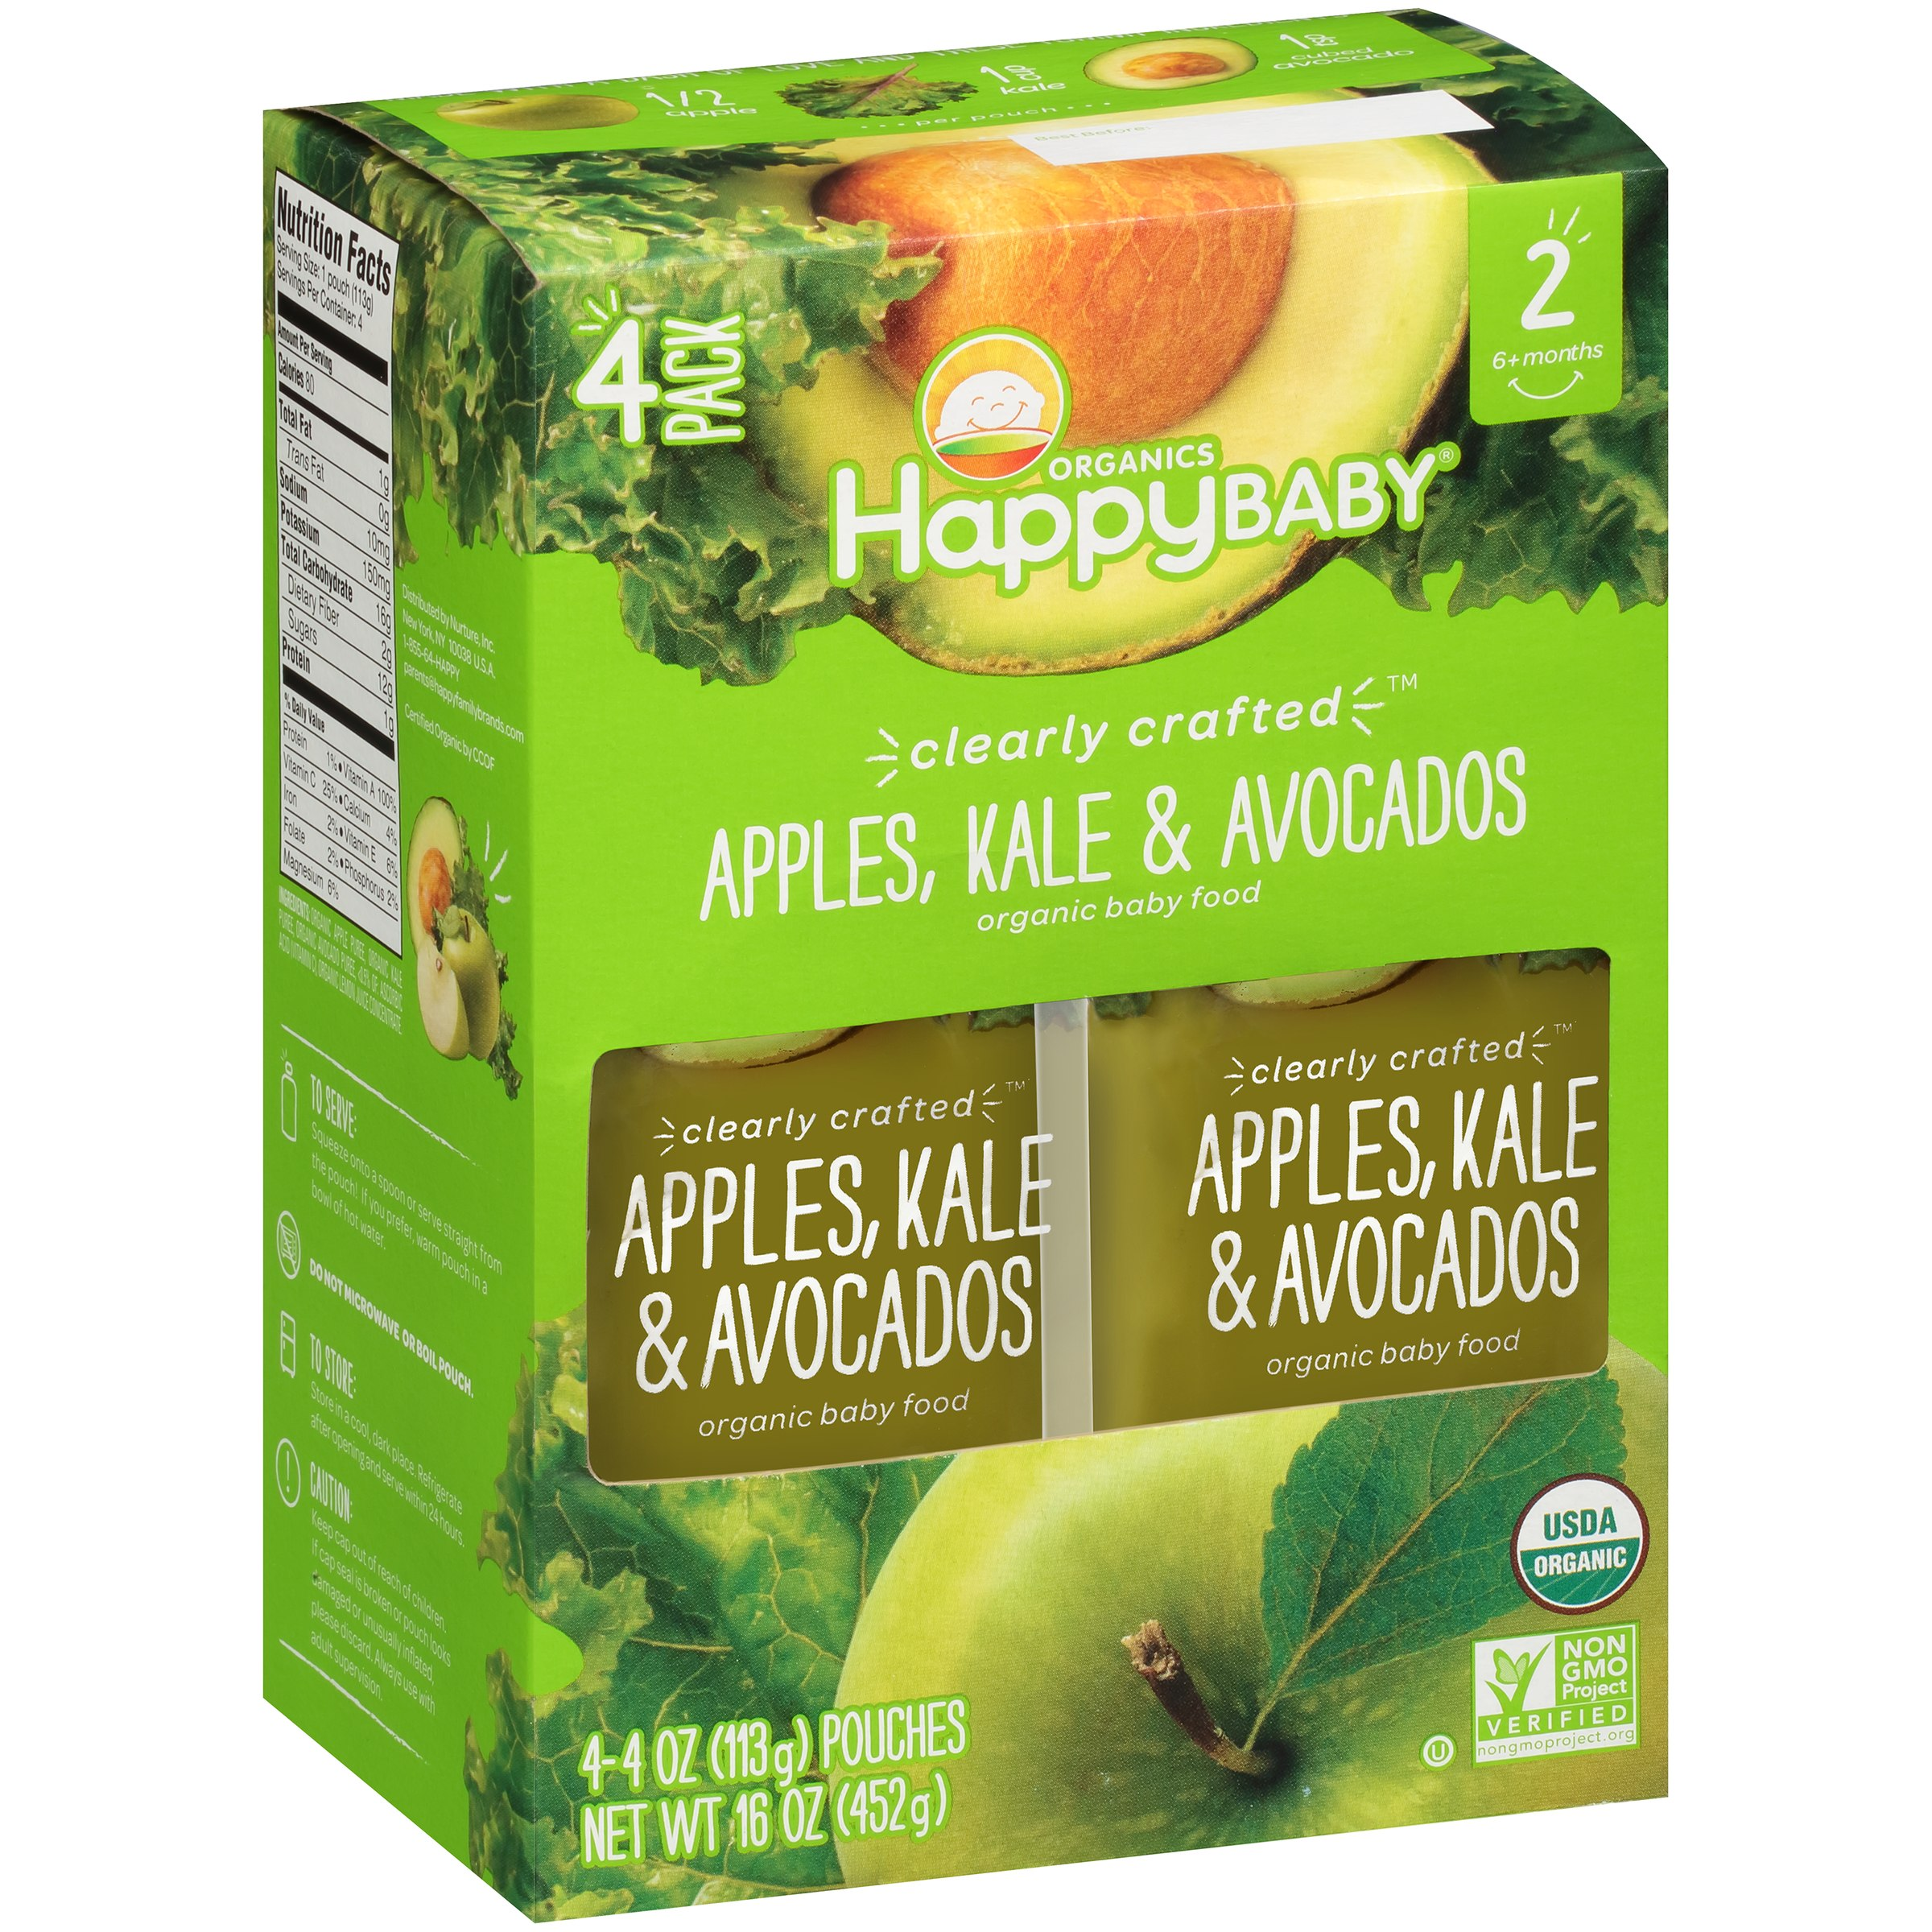 Happy Baby® Organics Clearly Crafted⢠Apples, Kale & Avocados Organic Baby Food 4-4 oz. Pouches